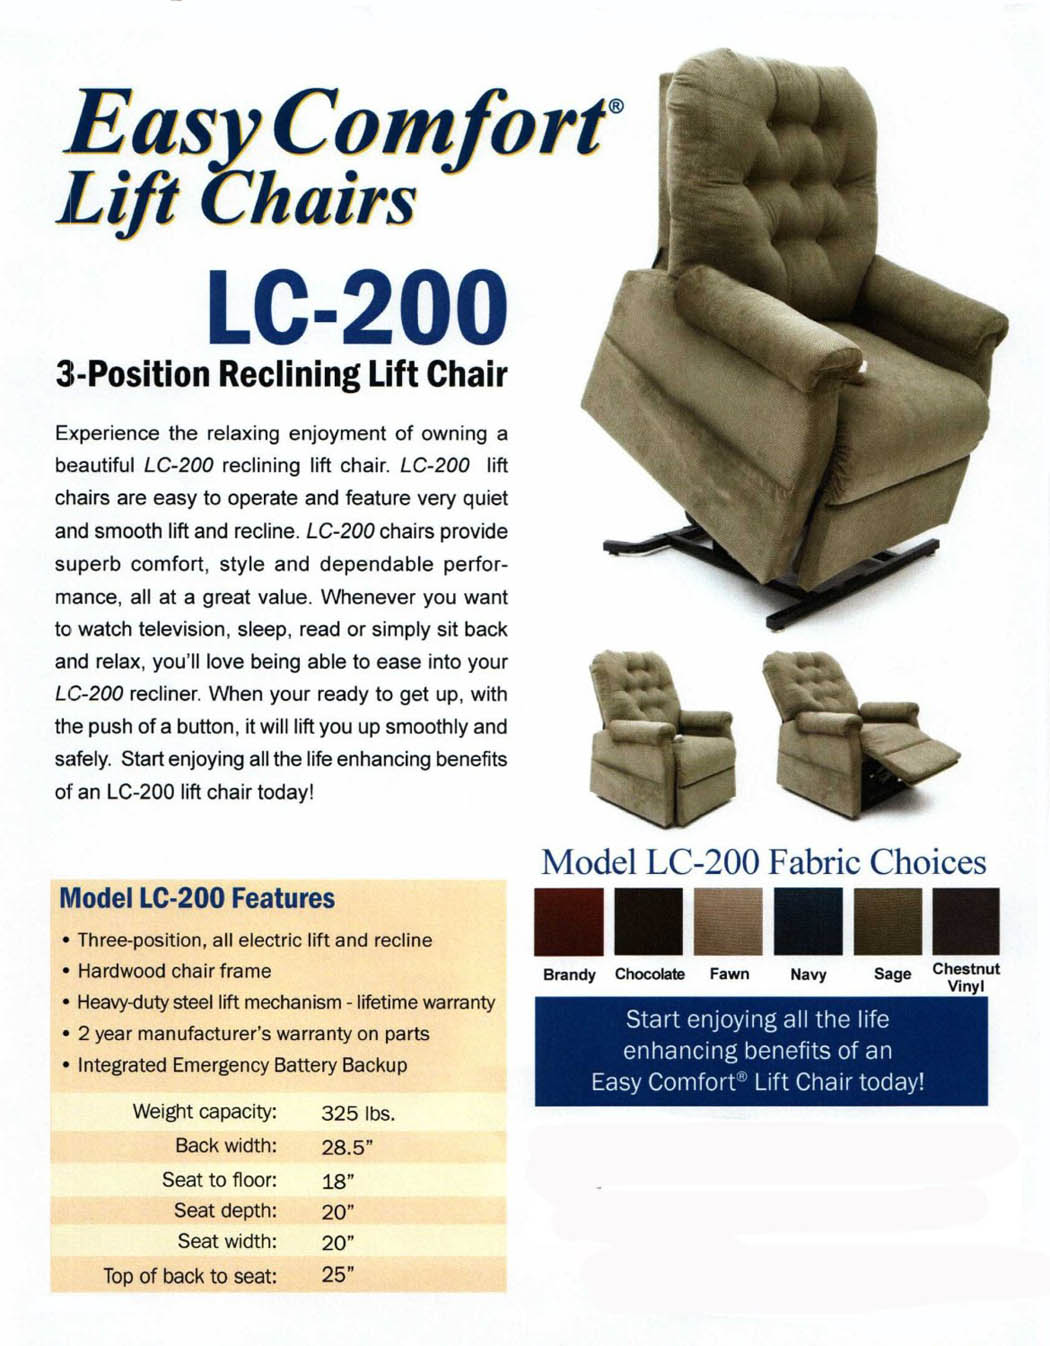 Home Easy Comfort Lift Chair Recliner Lc 200 3 Position Rising Electric Power Chaise Lounger